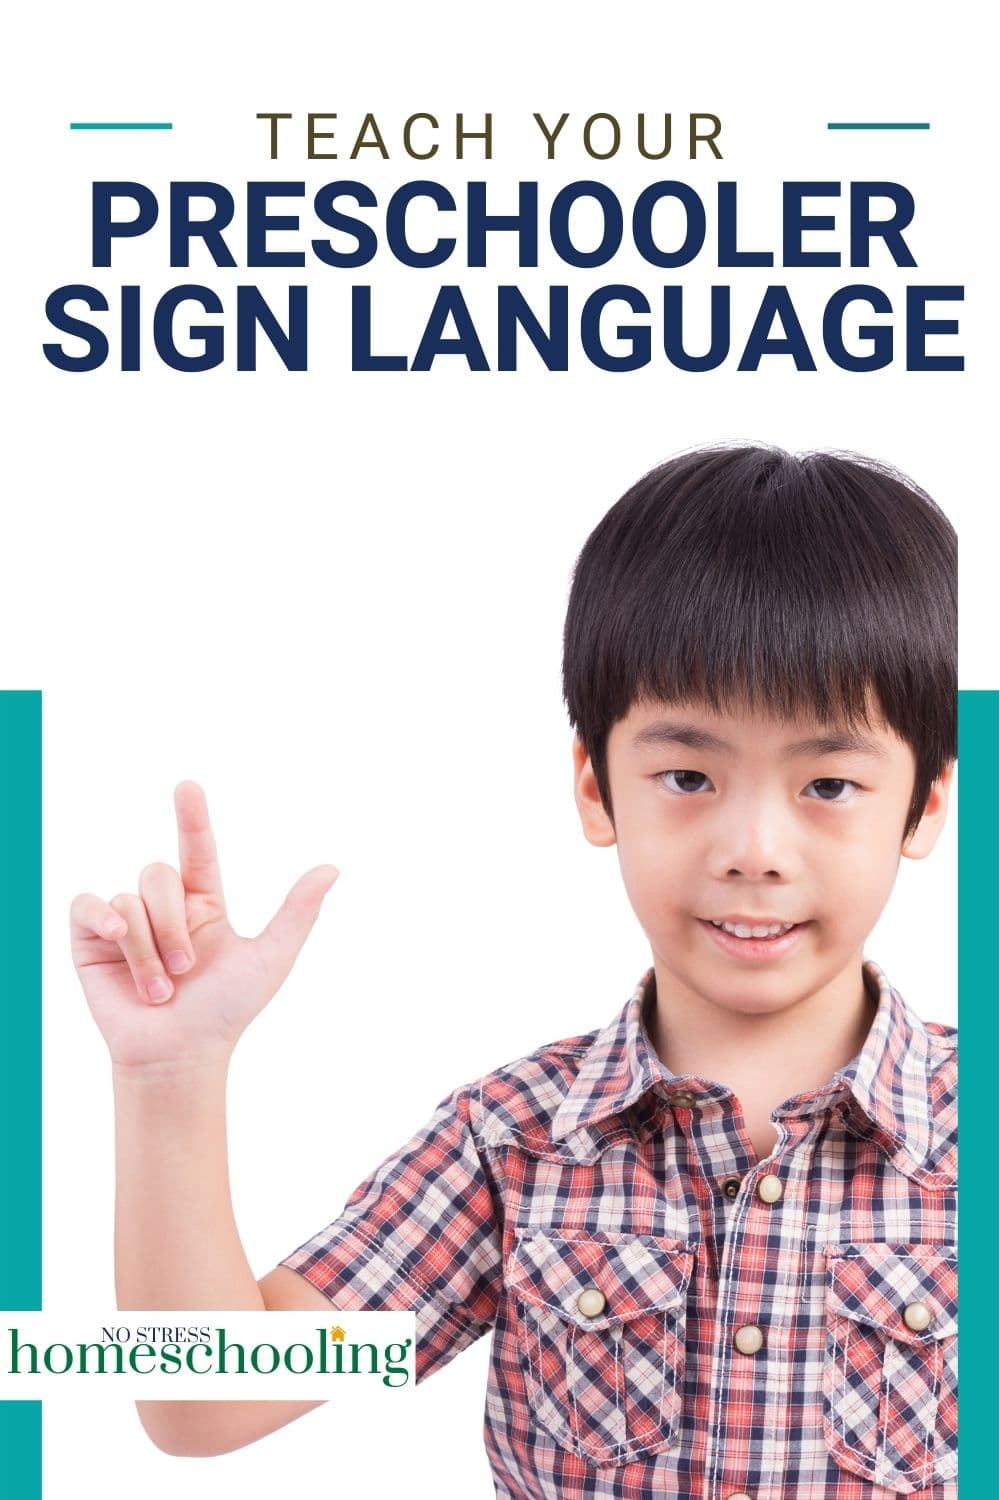 IMAGE SHOWING HOW TO TEACH SIGN LANGUAGE TO YOUR PRESCHOOLER